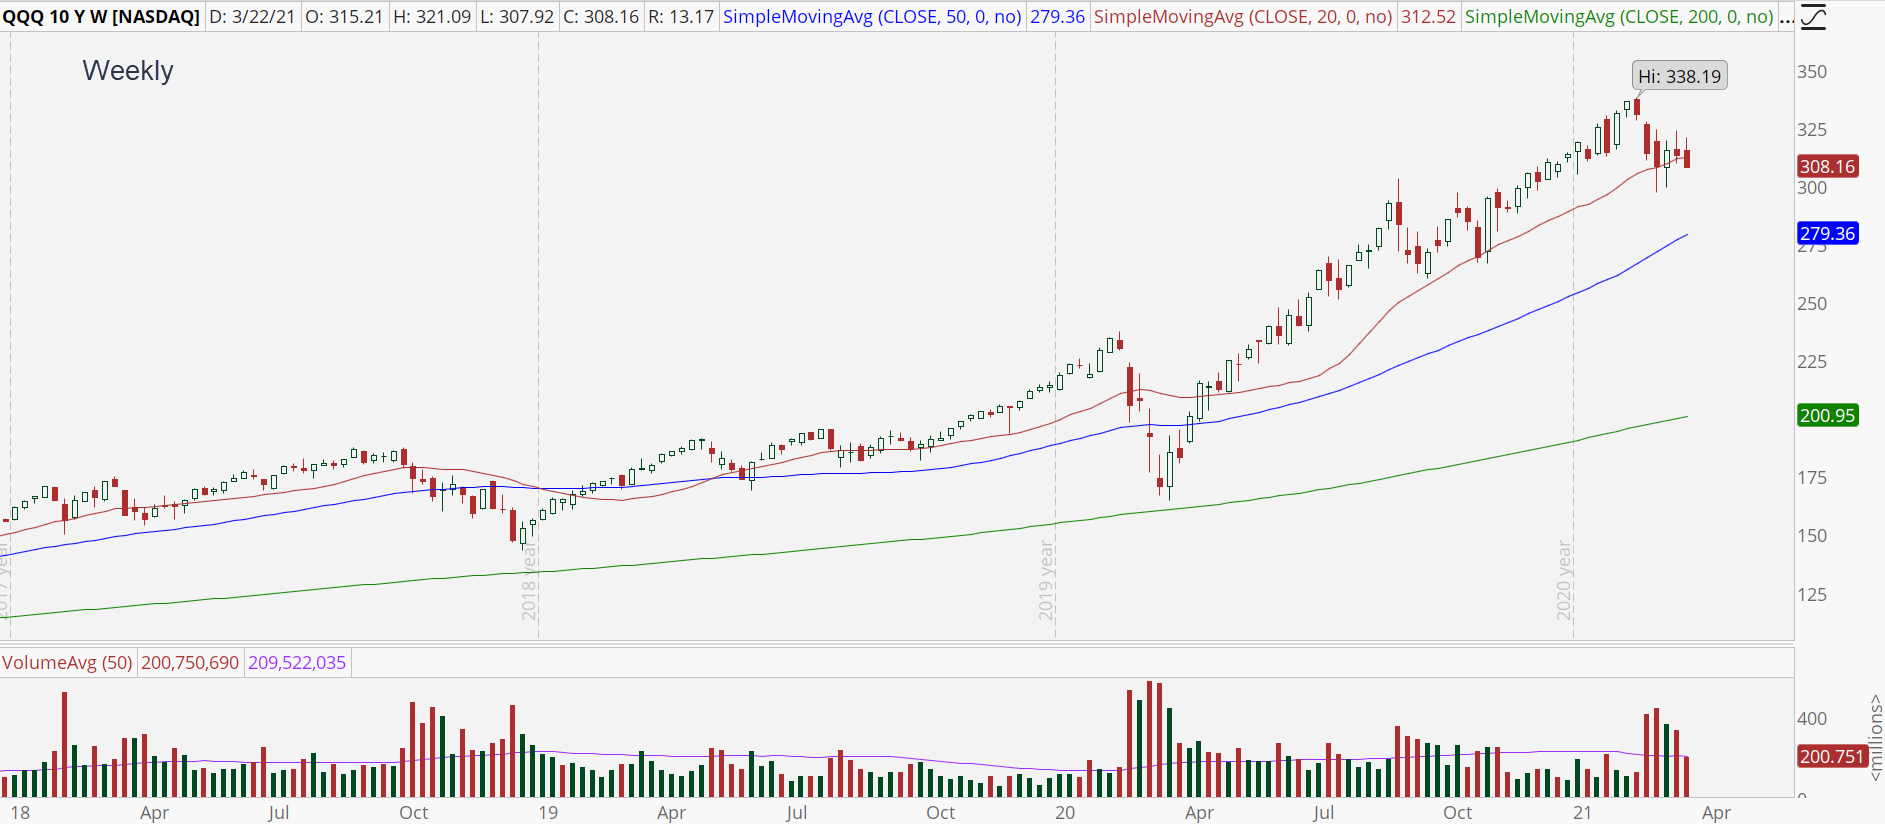 Invesco QQQ Trust (QQQ) weekly stock chart with long-term uptrend